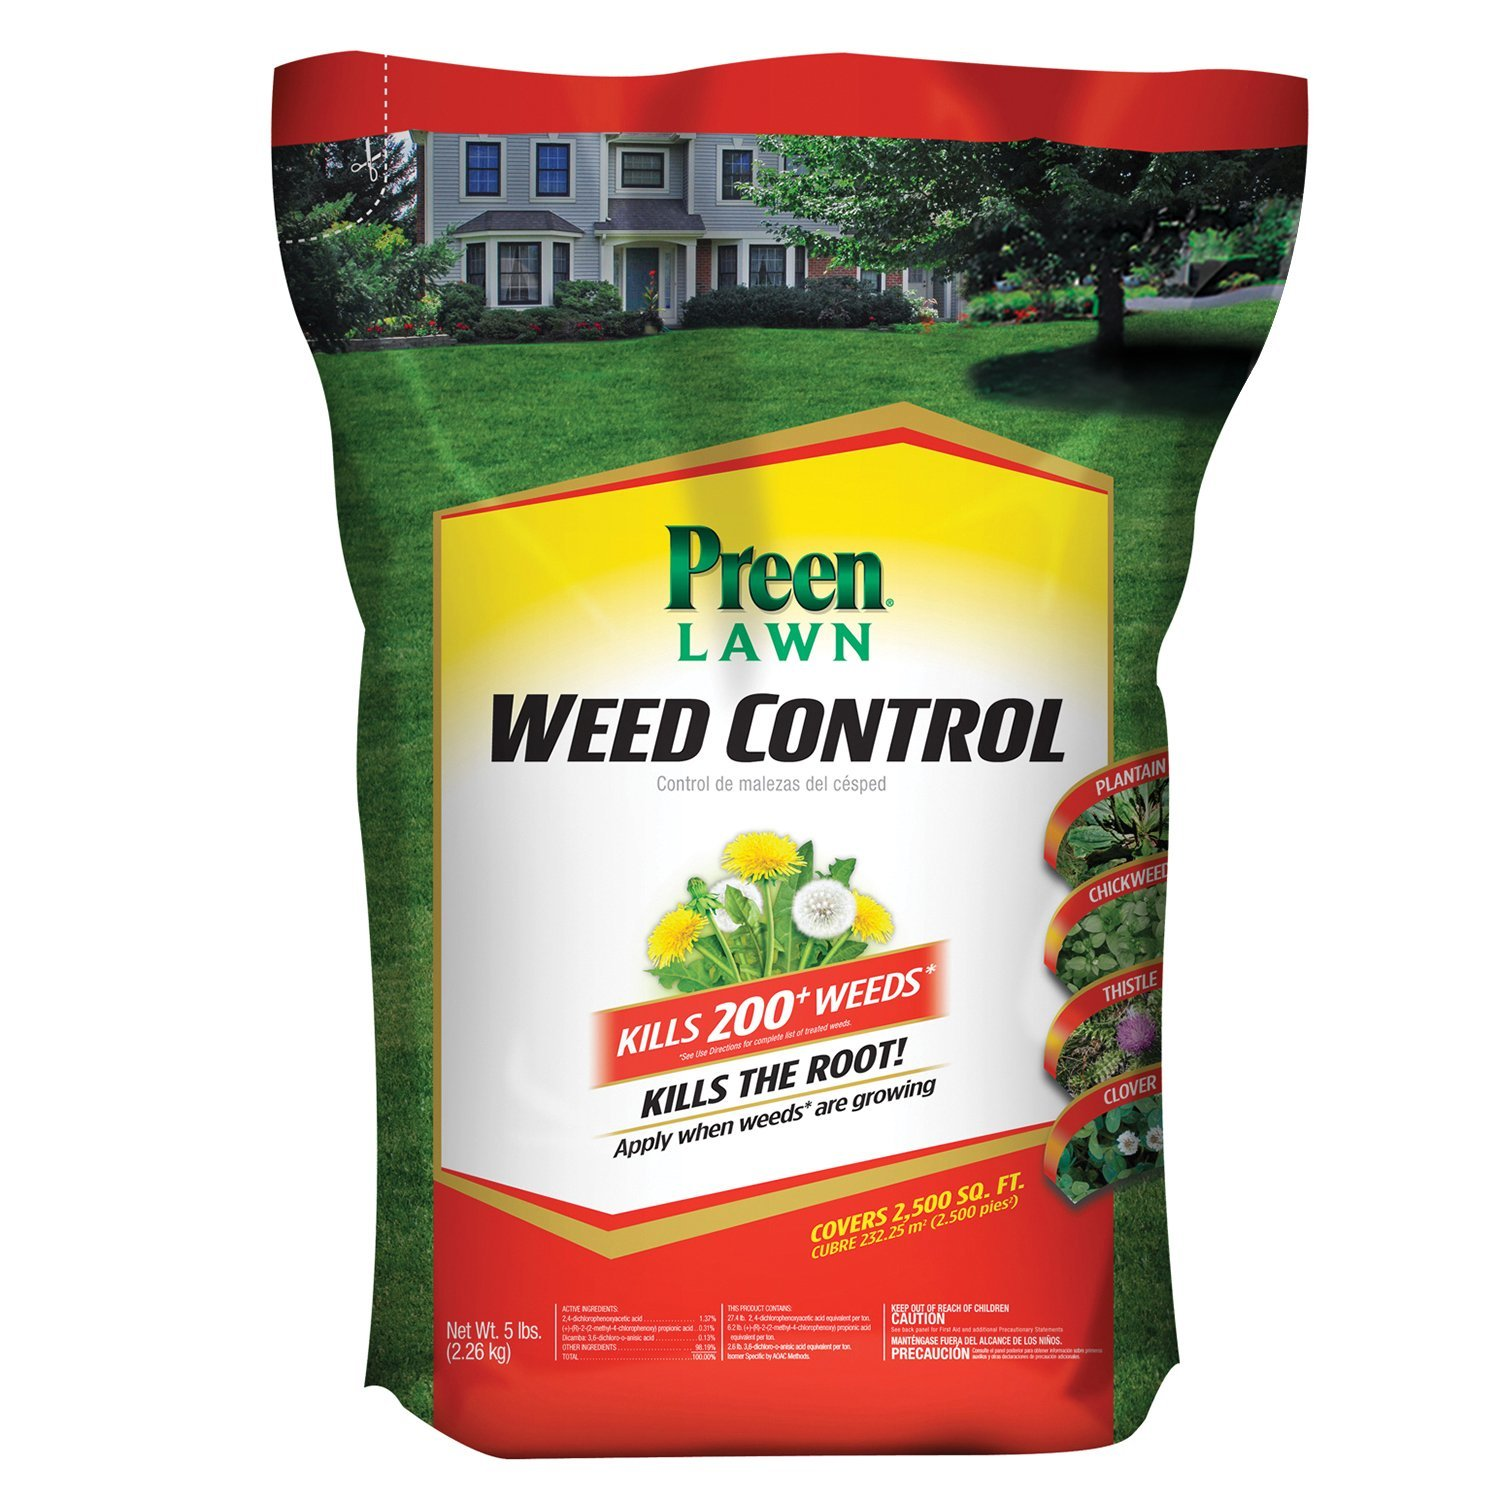 Preen Lawn Weed Control, 5 lb bag covers 2,500 sq ft